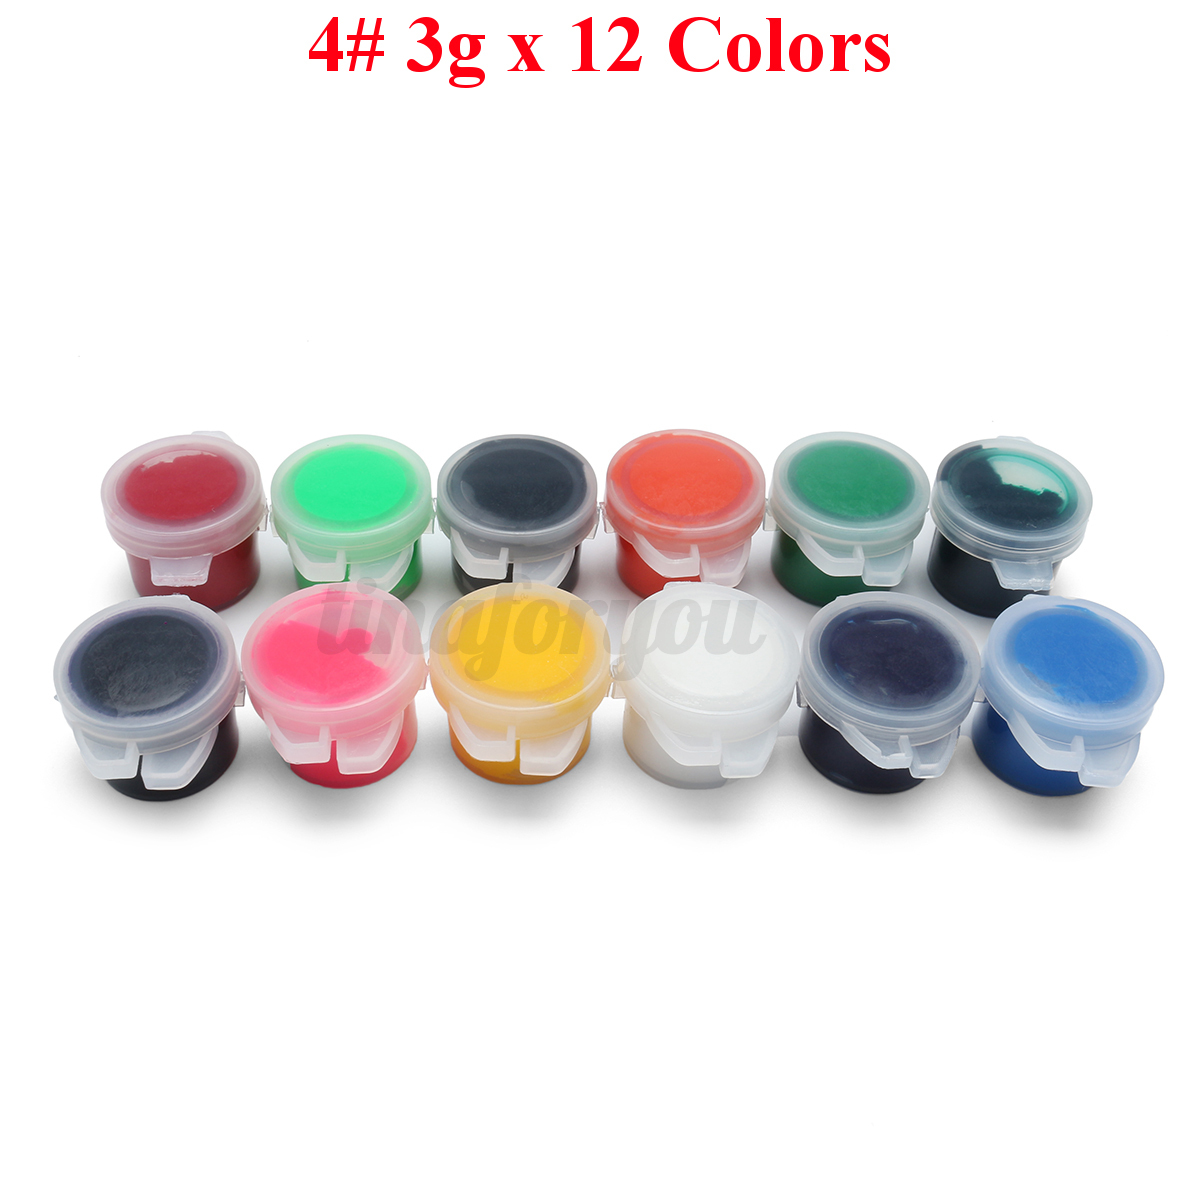 Epoxy UV Resin Coloring Dye Colorant Pigment Mix DIY Art Crafts Mix ...